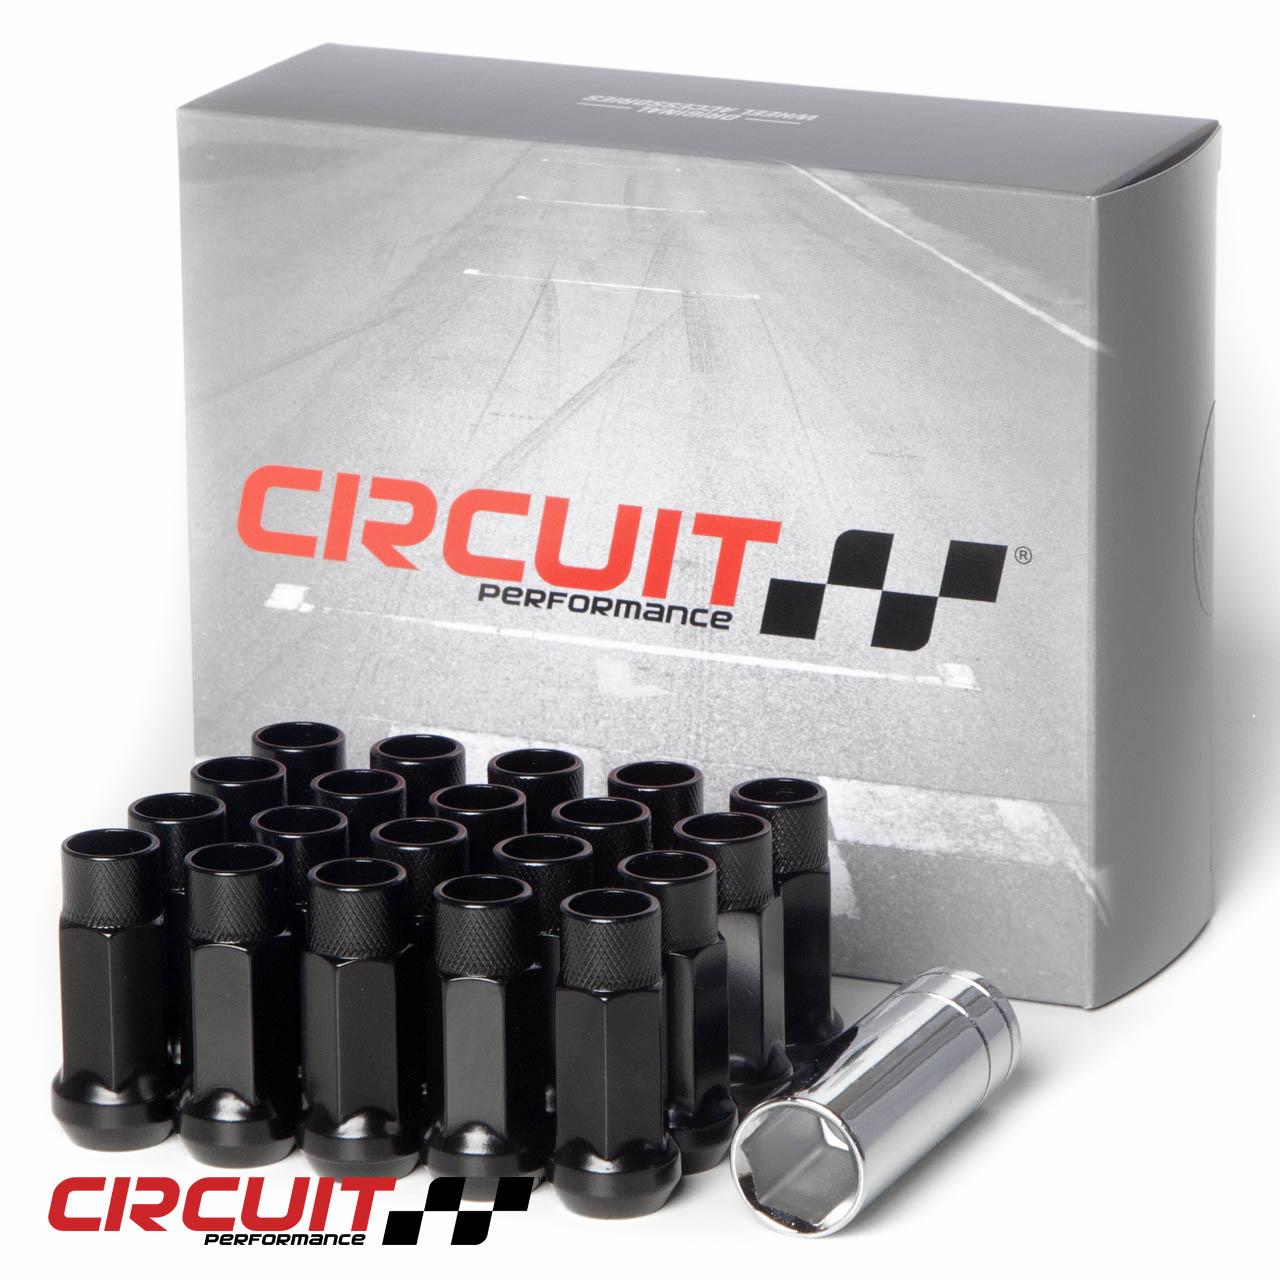 Precision 16 x Black Chrome Alloy Wheel Nuts and 4 x Locking Nuts for Ĥonda S2000 with Aftermarket Alloy Wheels PN.SFP-16NM10B+N10B155